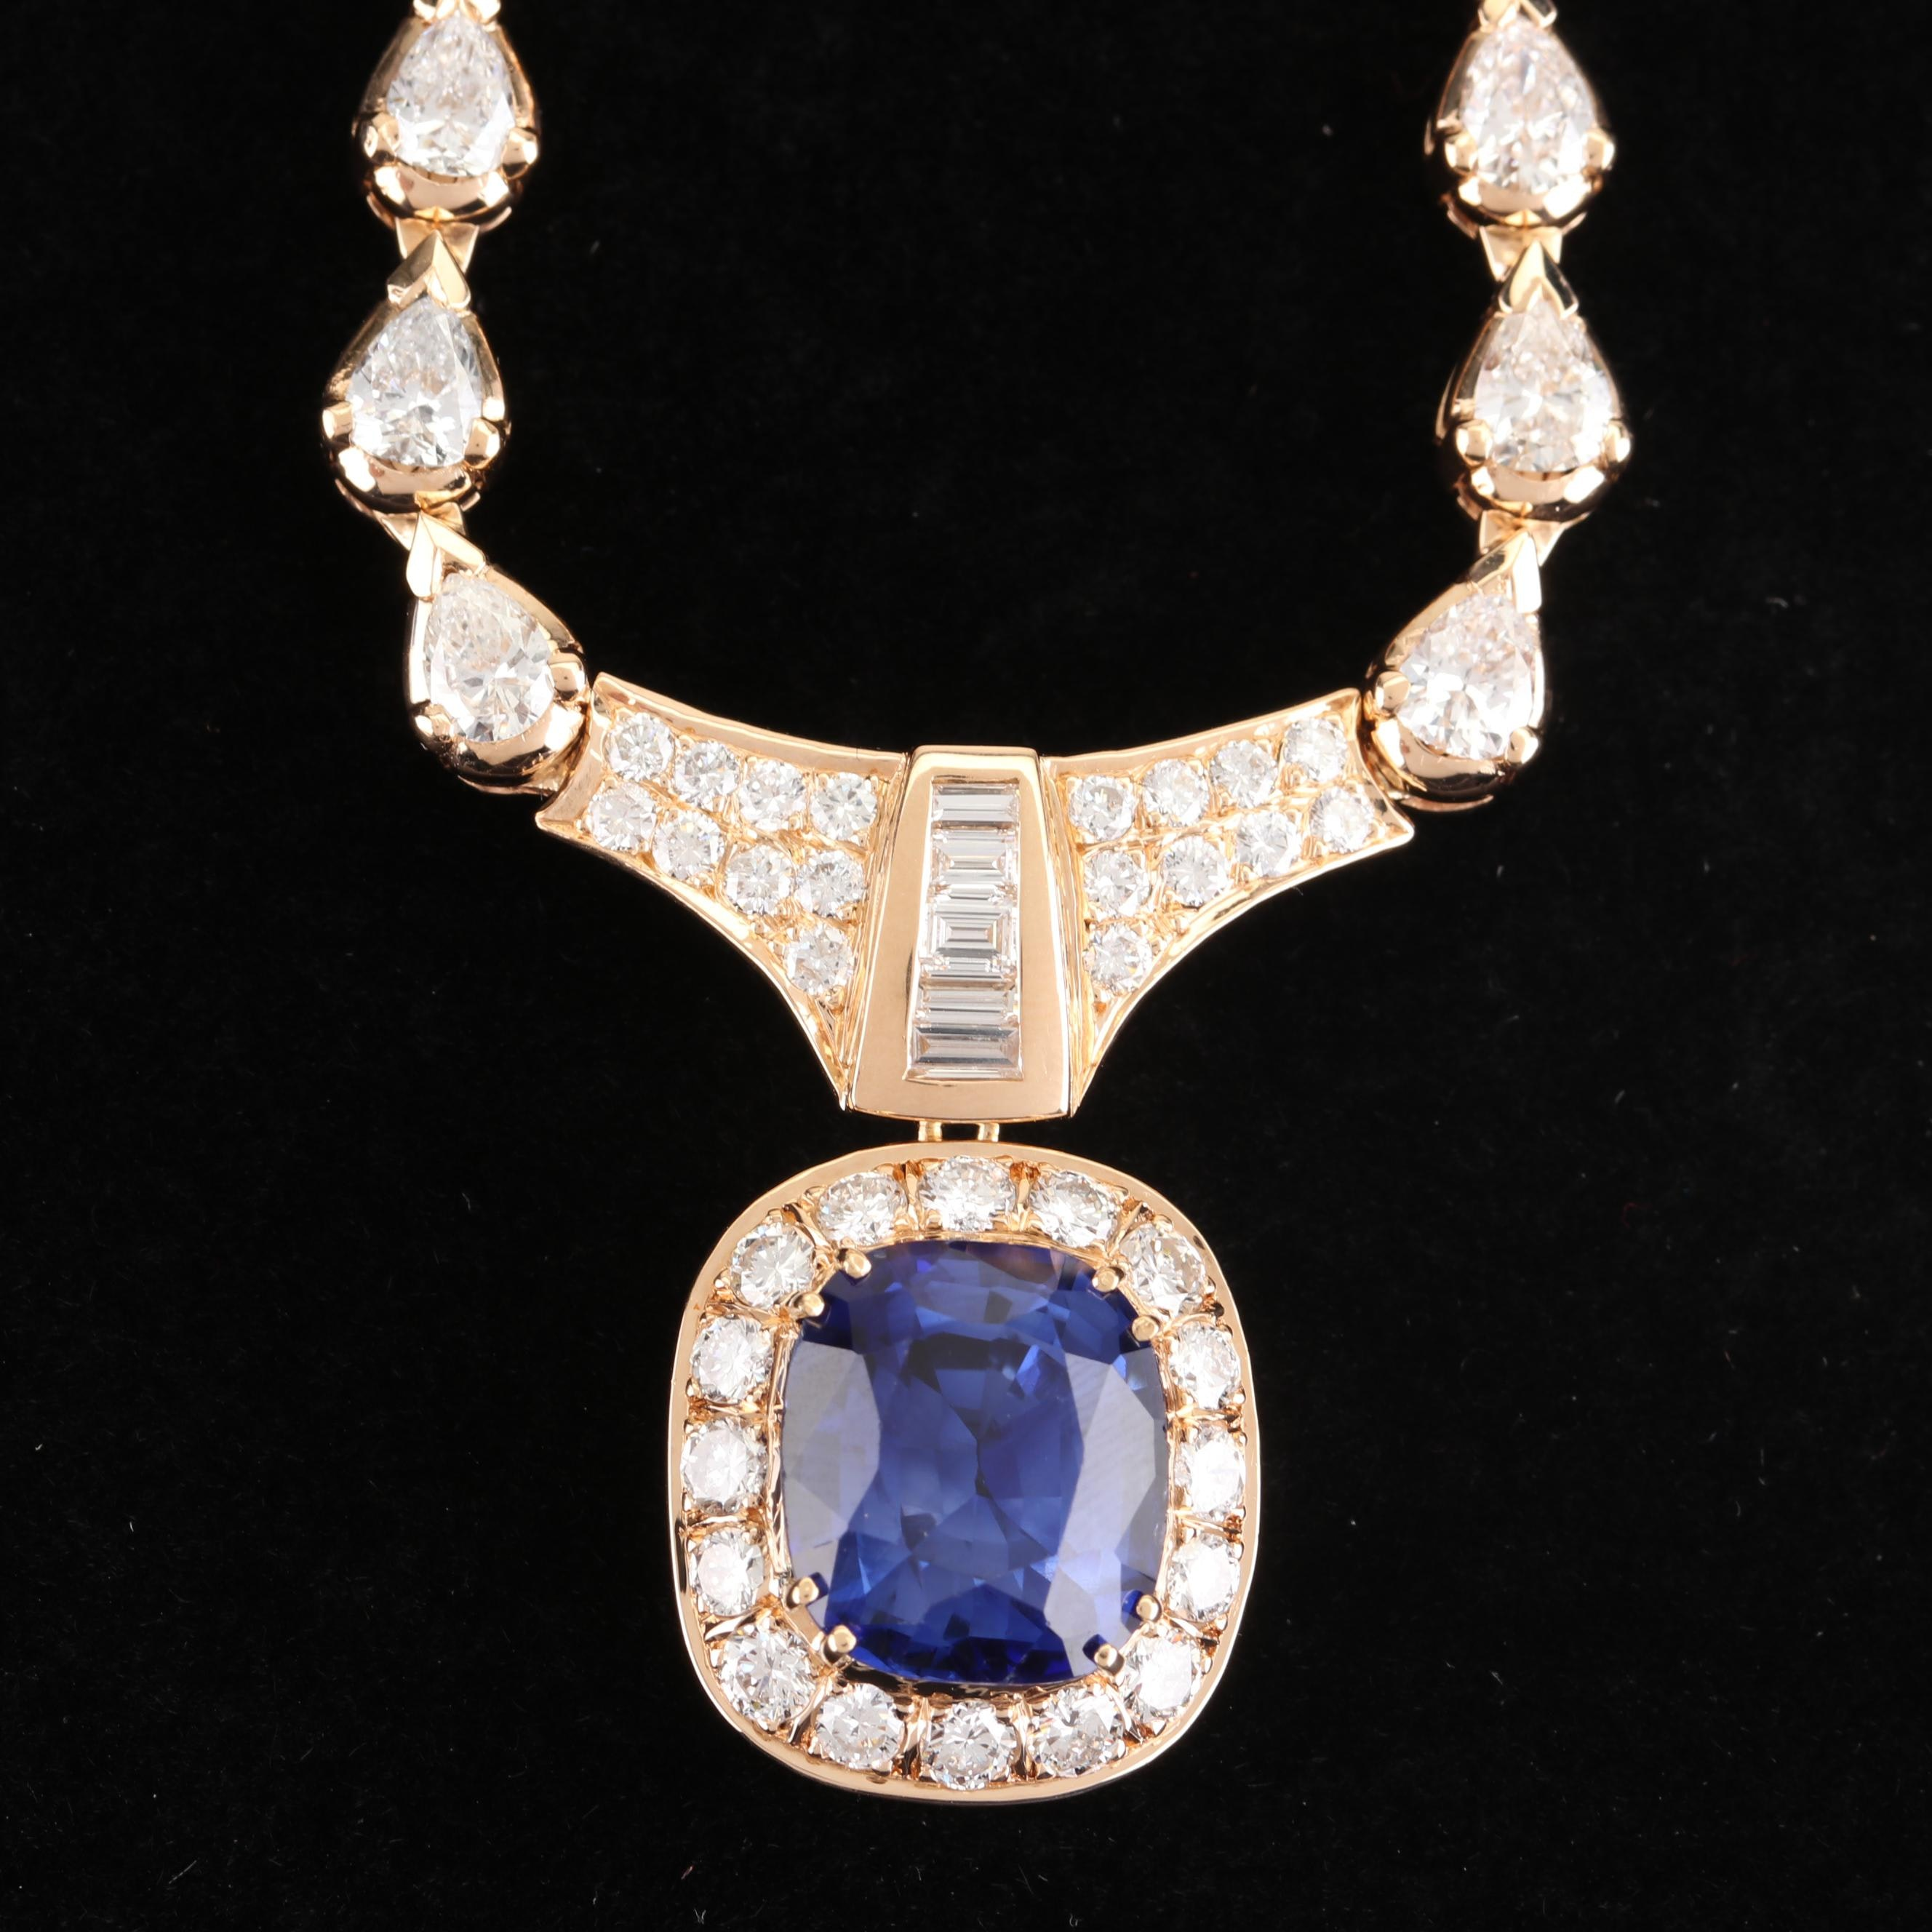 18K Yellow Gold 9.66 CT Sapphire and 6.94 CTW Diamond Necklace